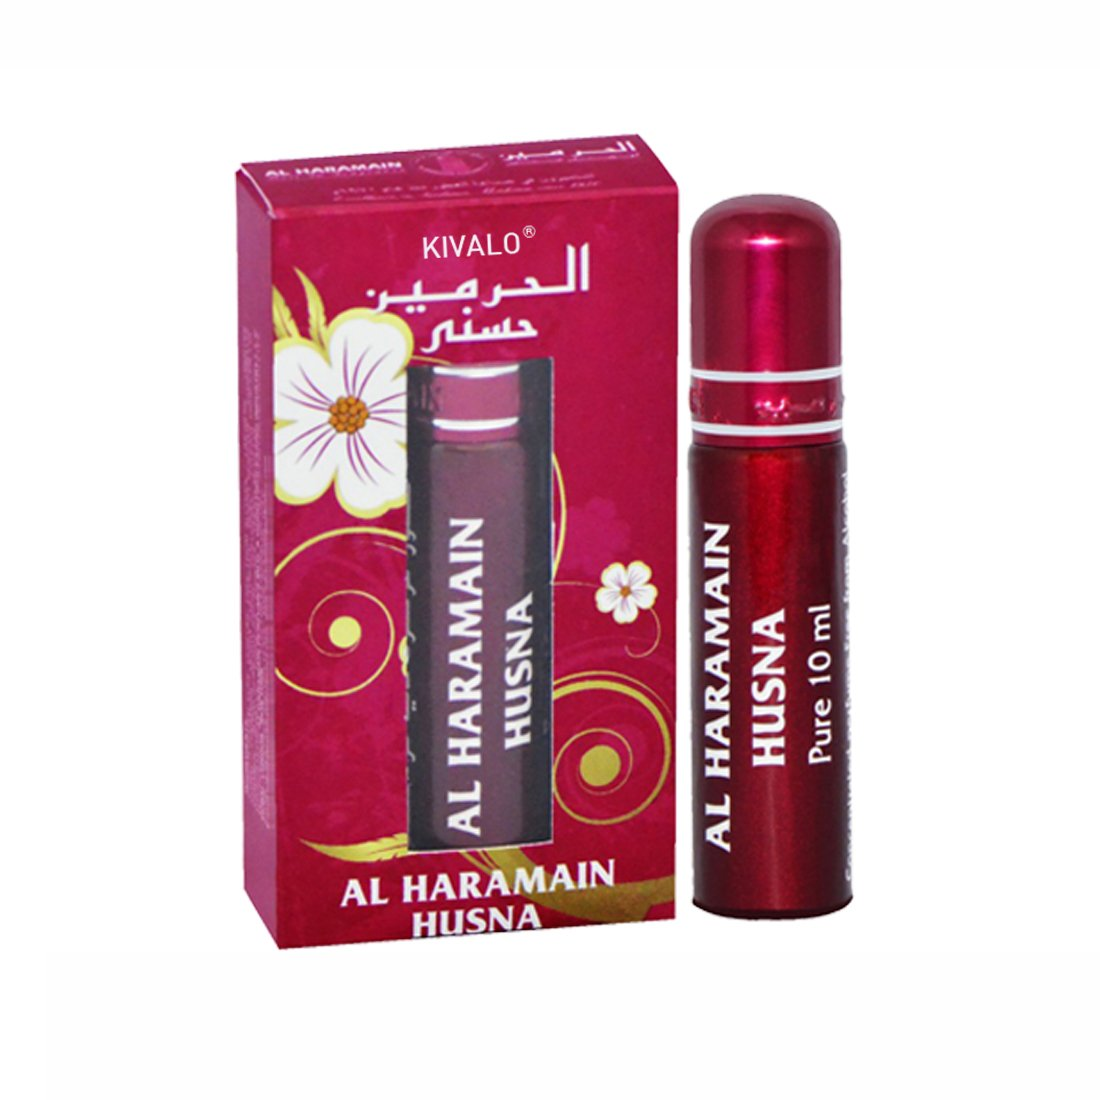 Al Haramain Husna Fragrance Pure Original Roll On Attar - 10 ml